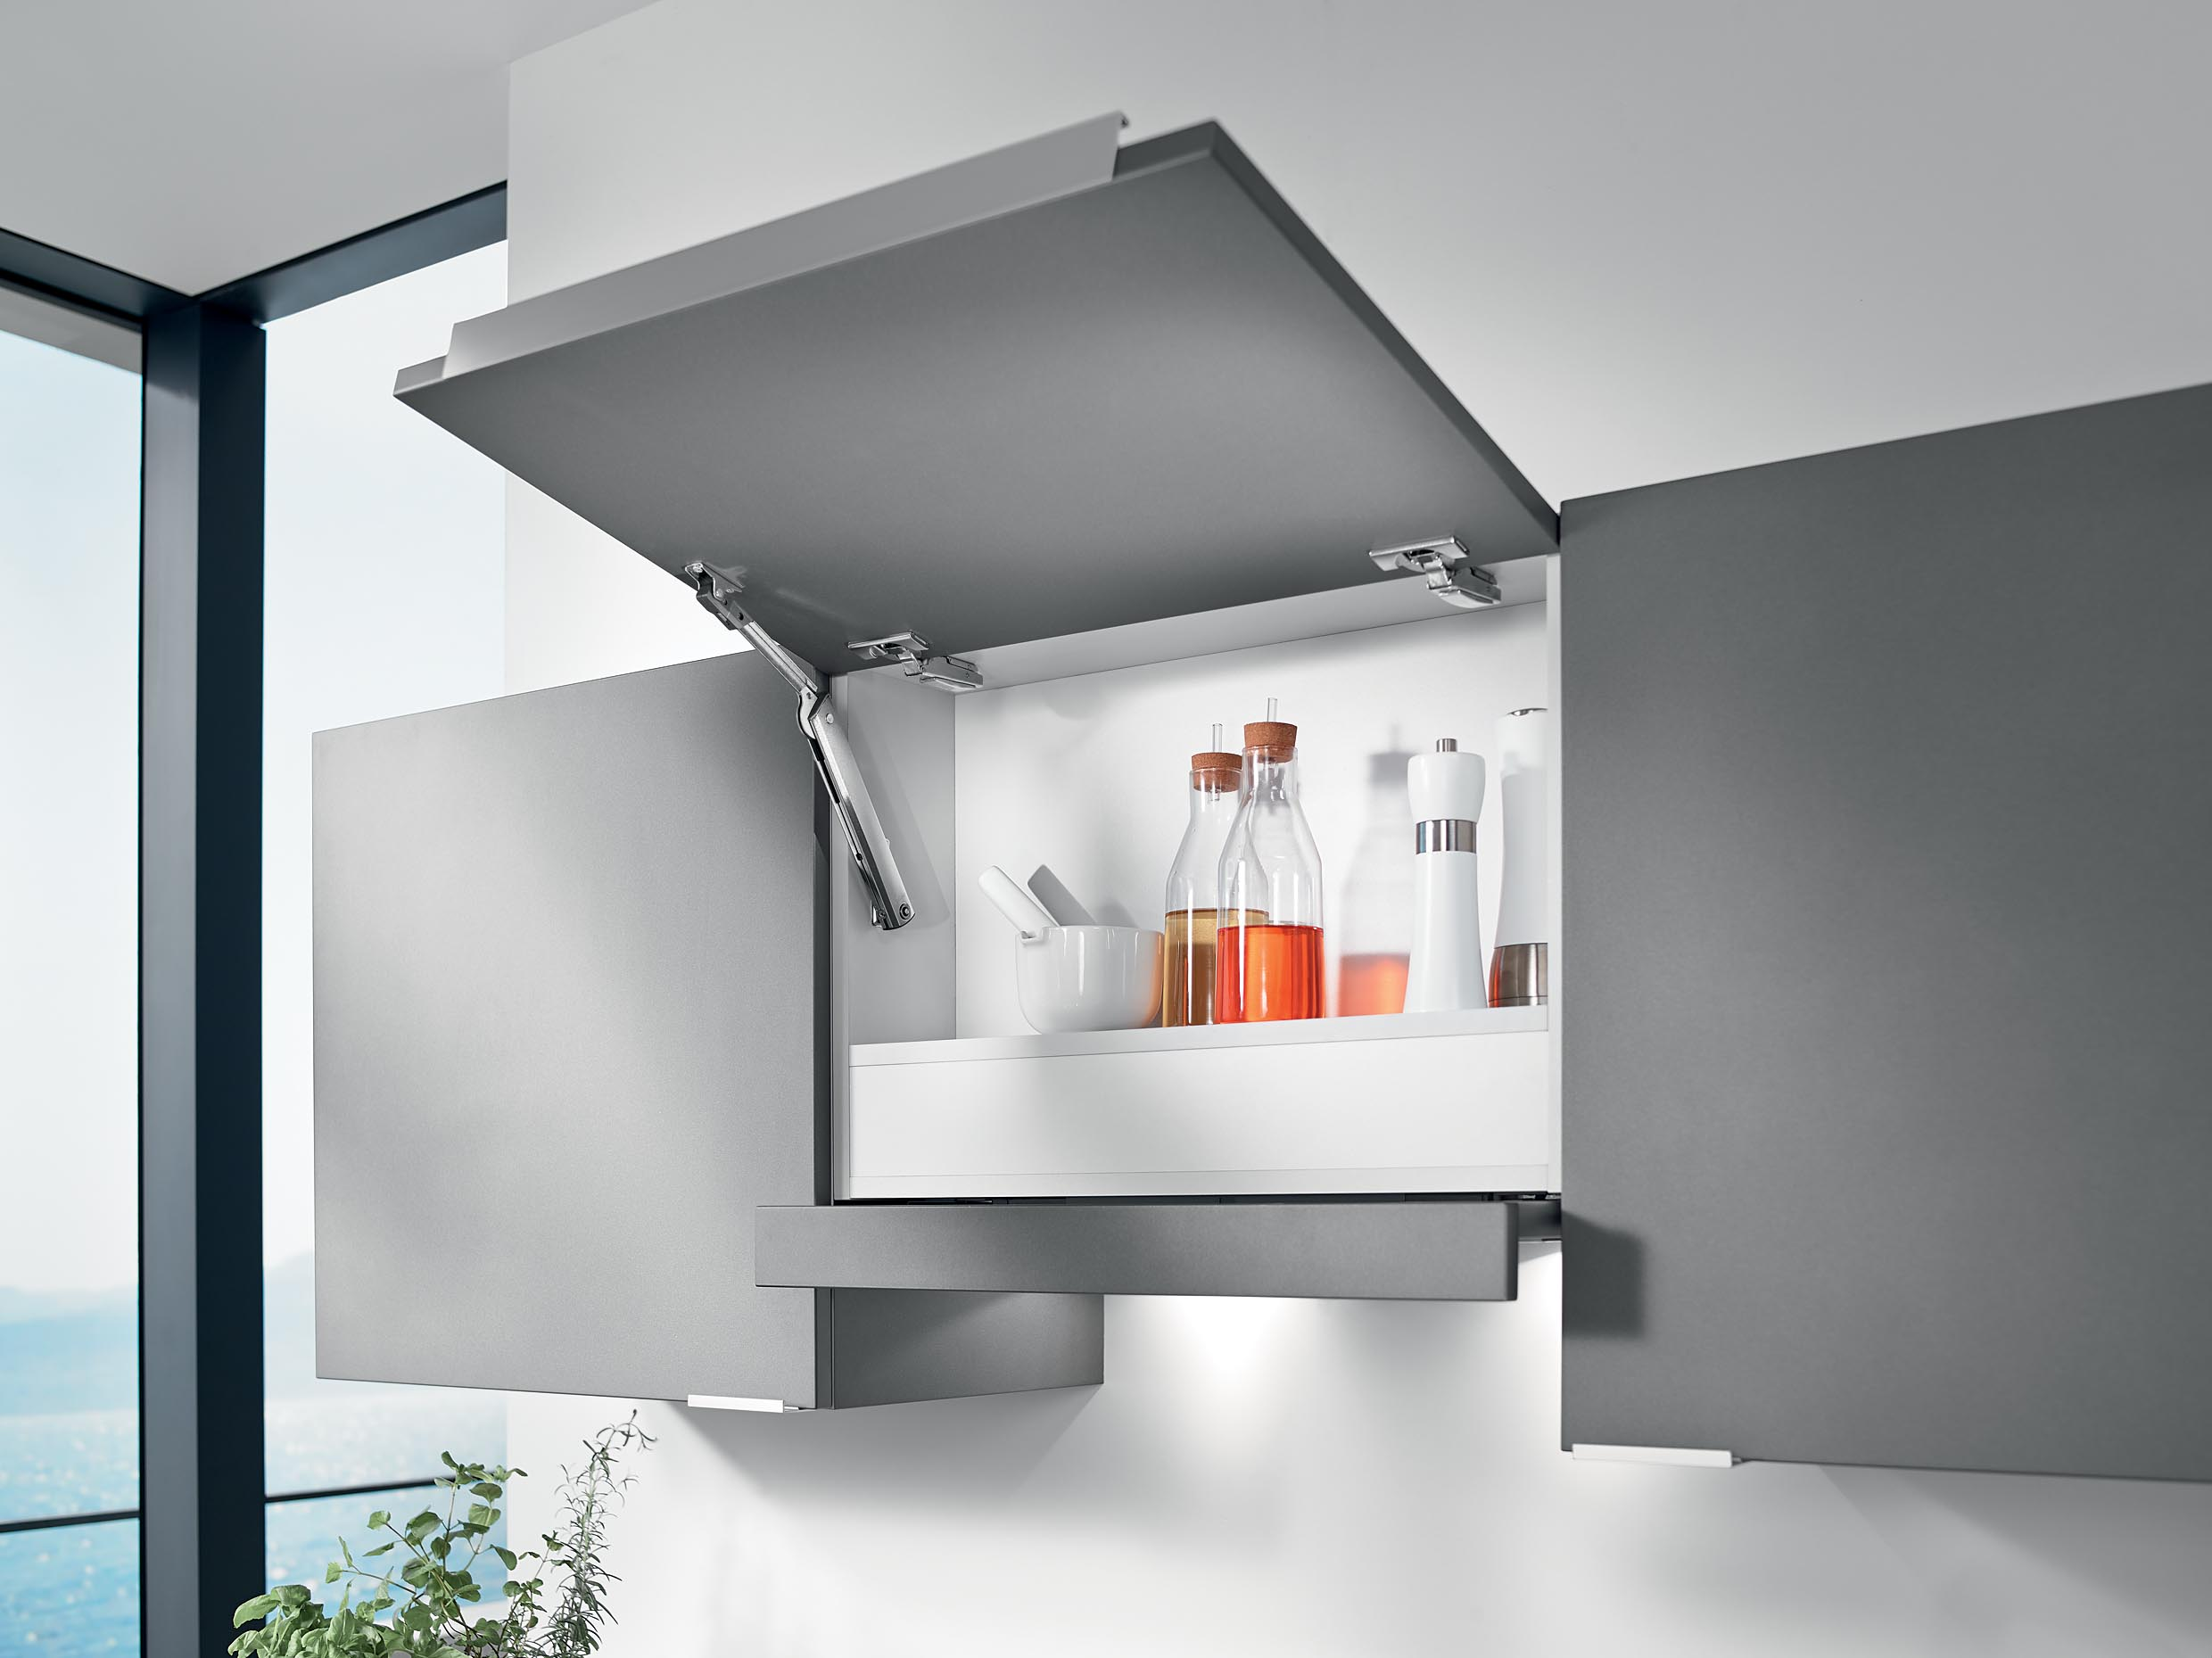 Kitchens By Design Blum Aventos Hk Xs The Kitchen And Bathroom Blog